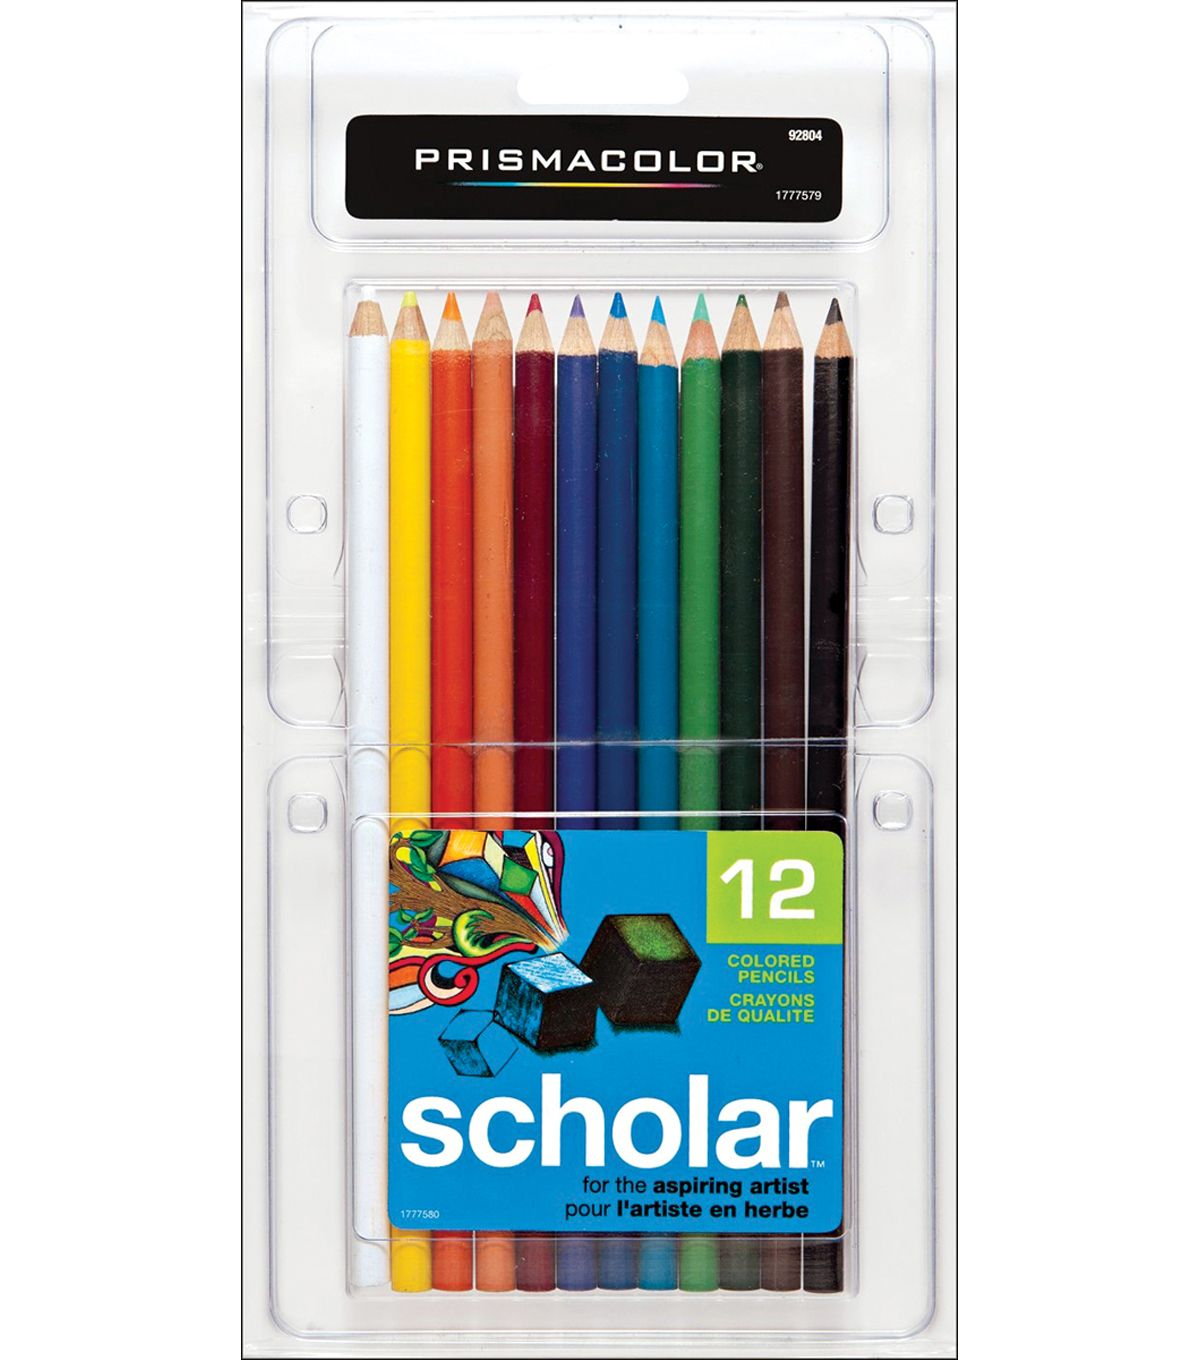 Prismacolor Scholar Colored Pencil Set 12 Pk Prismacolor